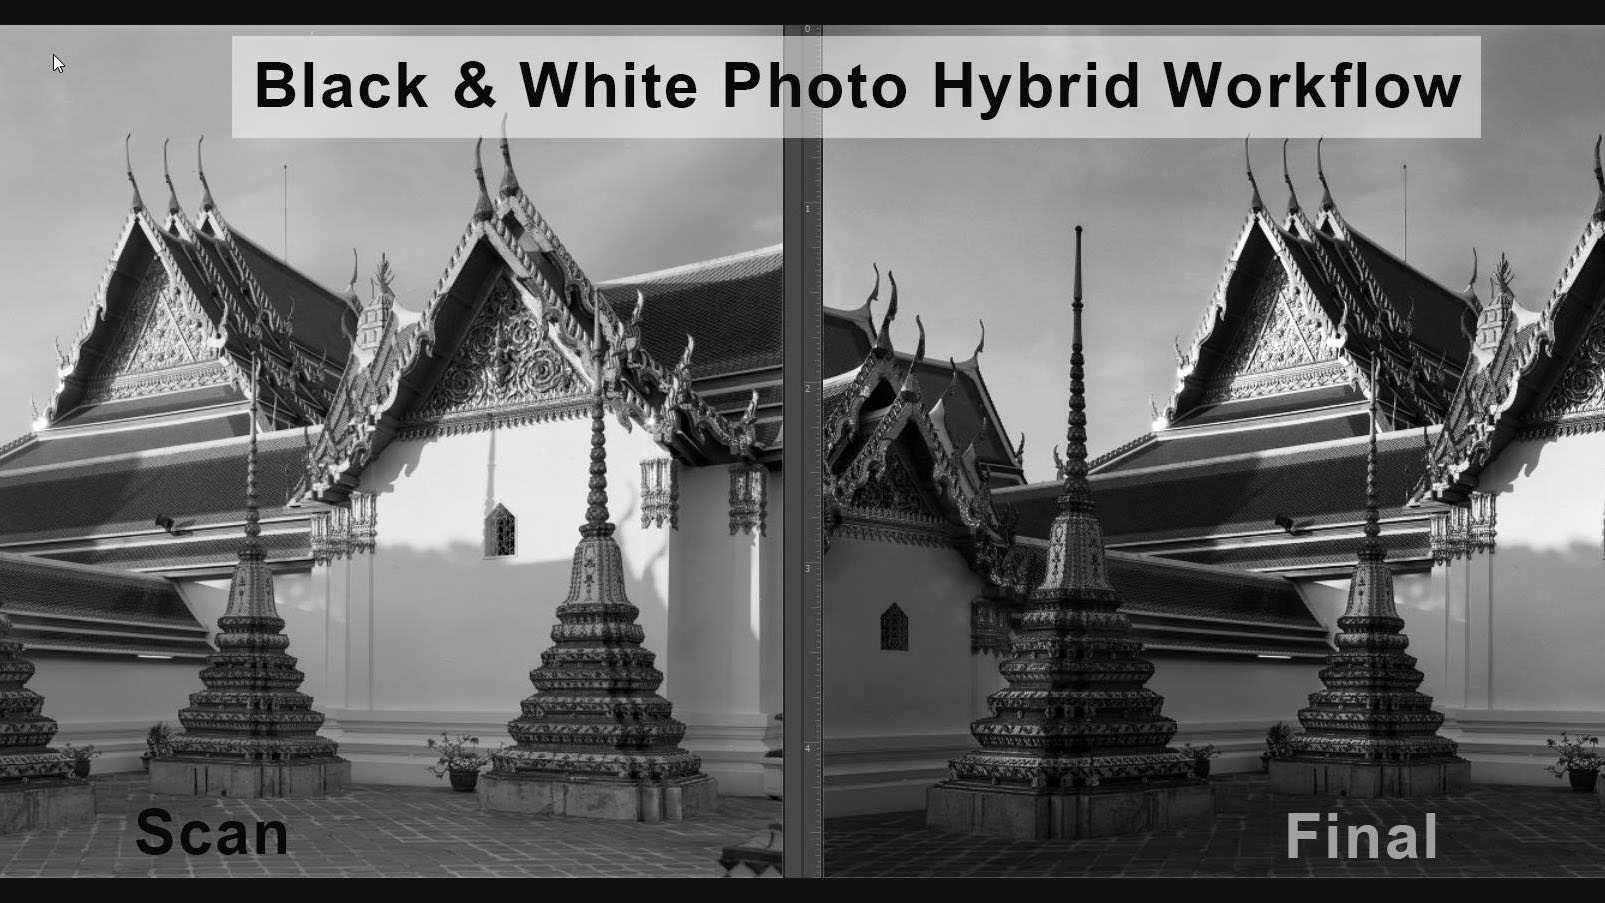 Black & White Photo Hybrid Workflow